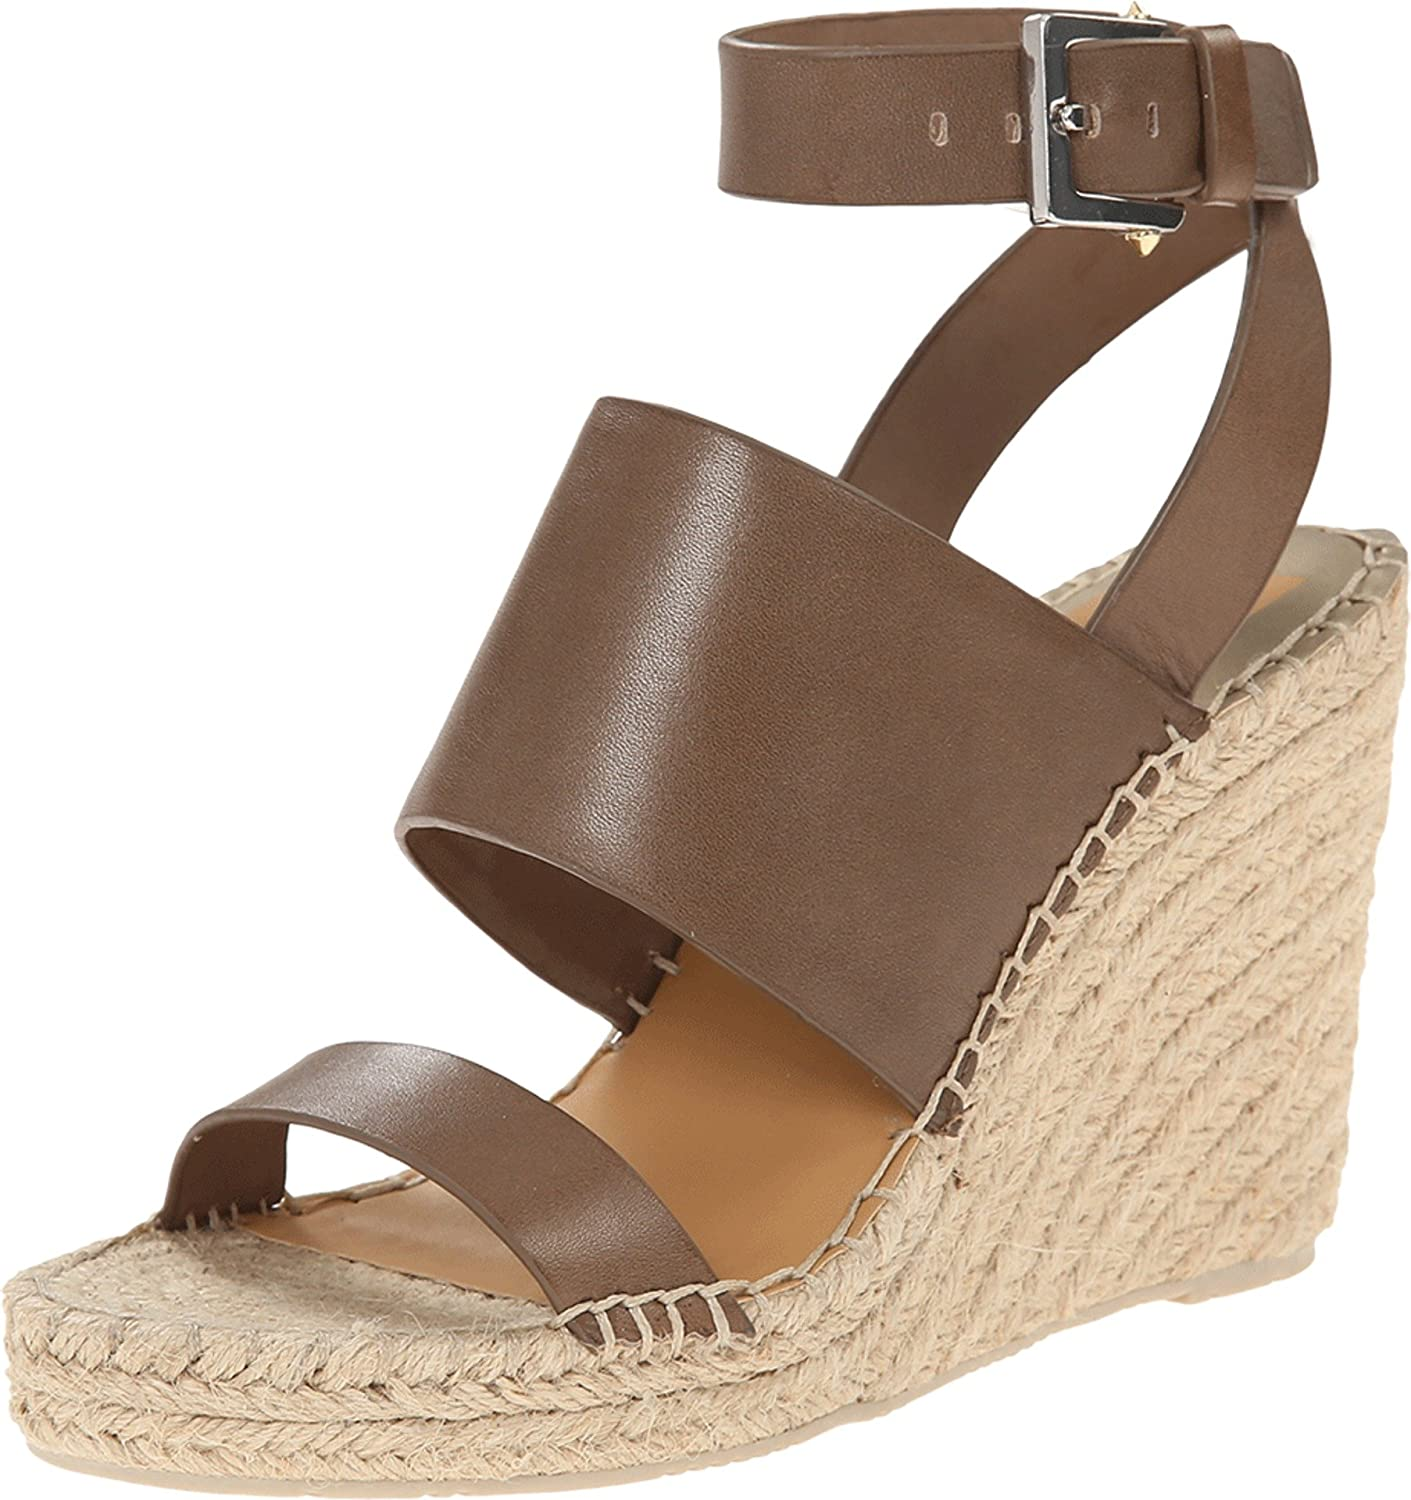 Dolce Vita Women's Nessah Espadrille Wedge B00Q6NBLJ4 9.5 B(M) US|Olive Leather